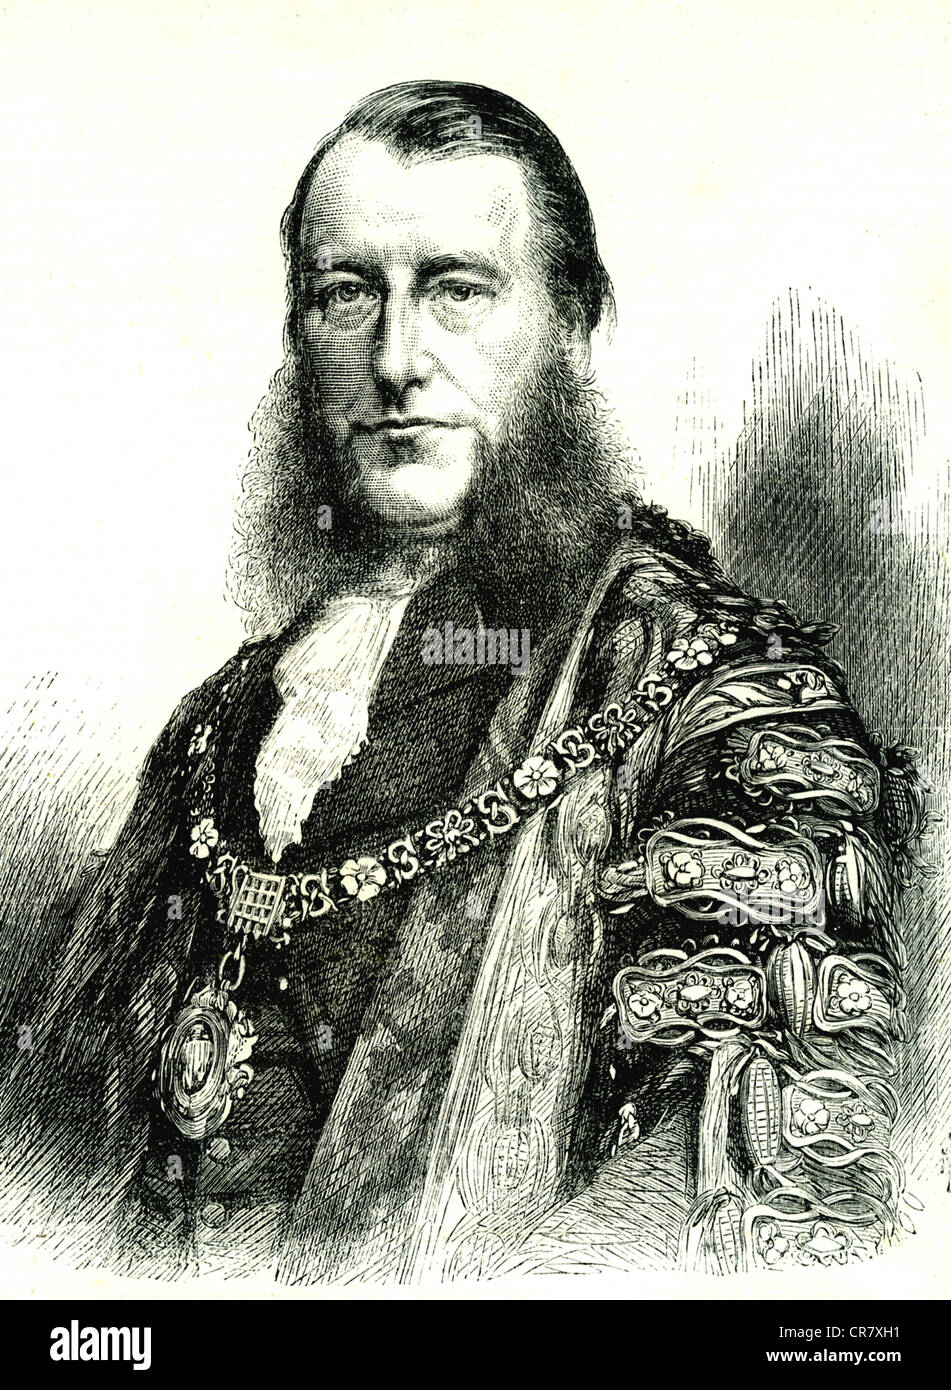 James Lawrence, Lord Mayor of London, historical portrait, 1870 - Stock Image